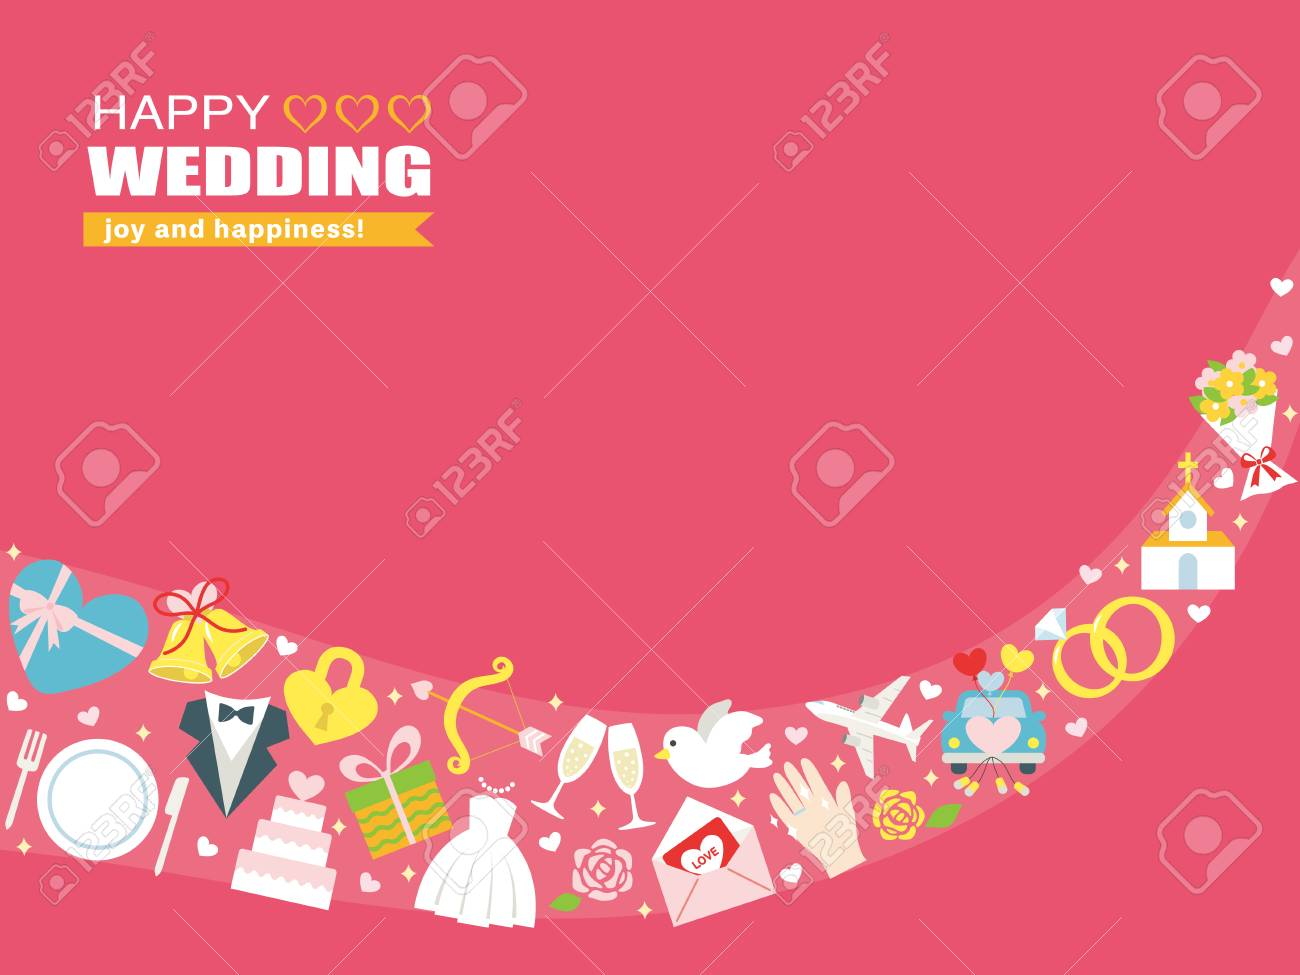 Happy Wedding Greeting Card Royalty Free Cliparts Vectors And